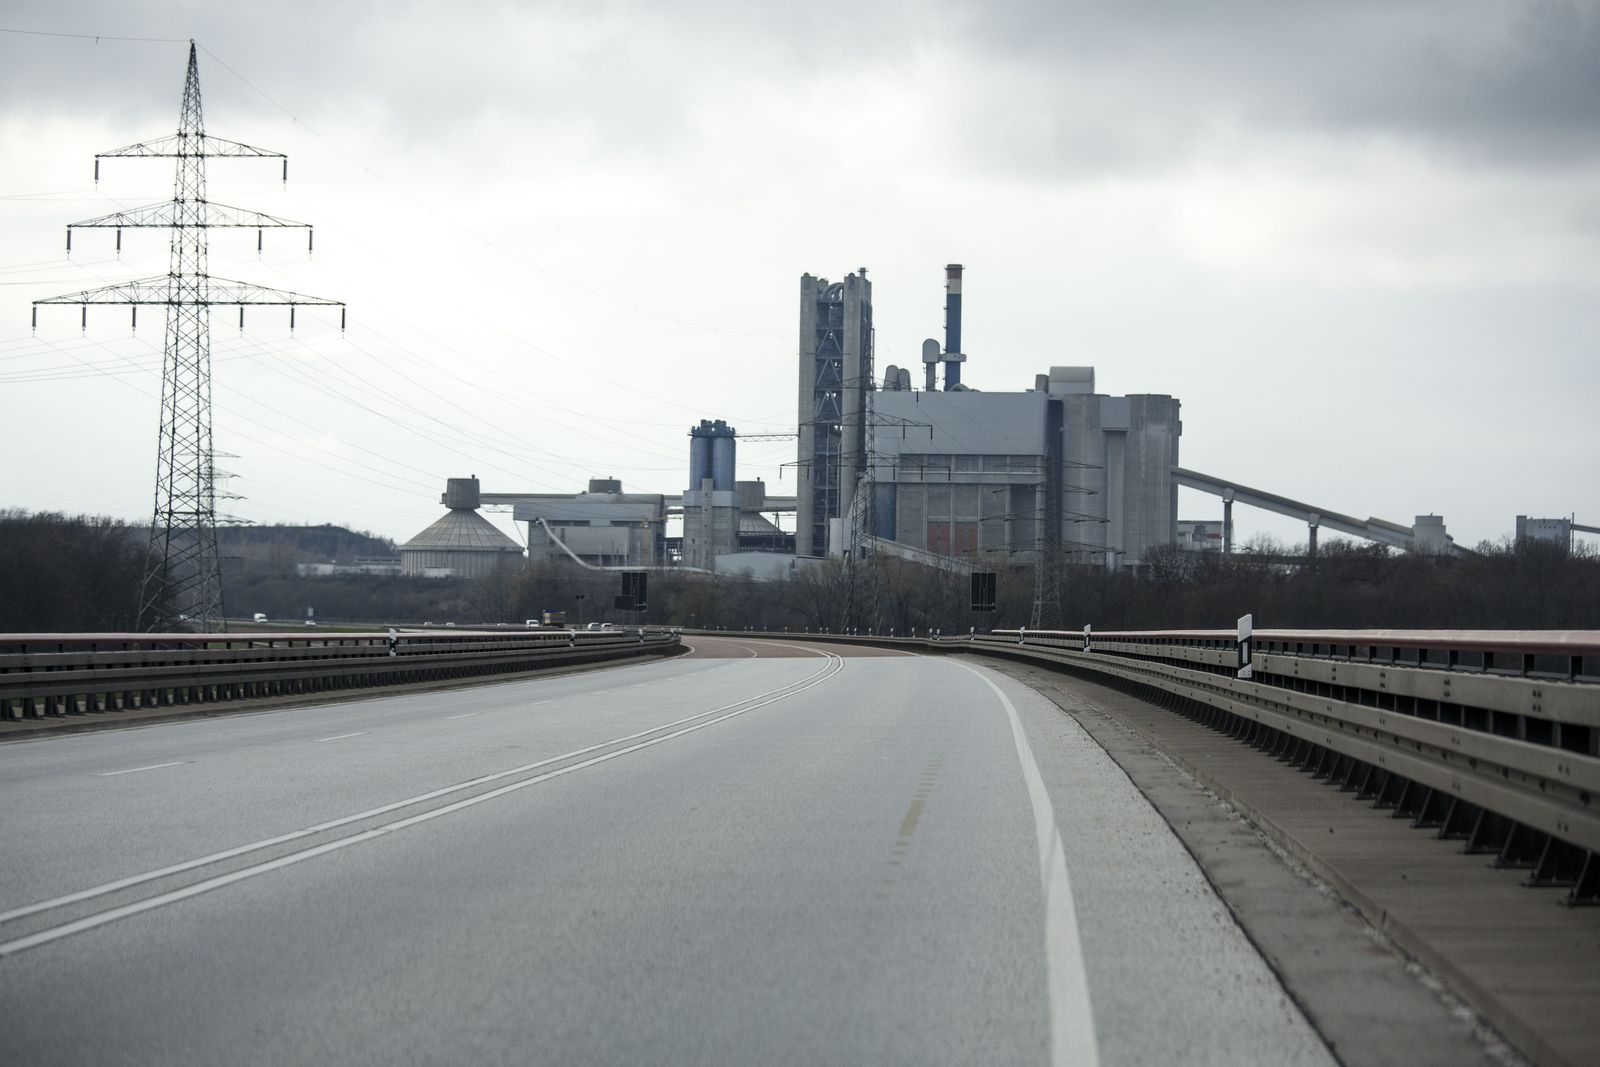 In Eastern Germany Many Medium-Sized Towns Suffer From Population Decline